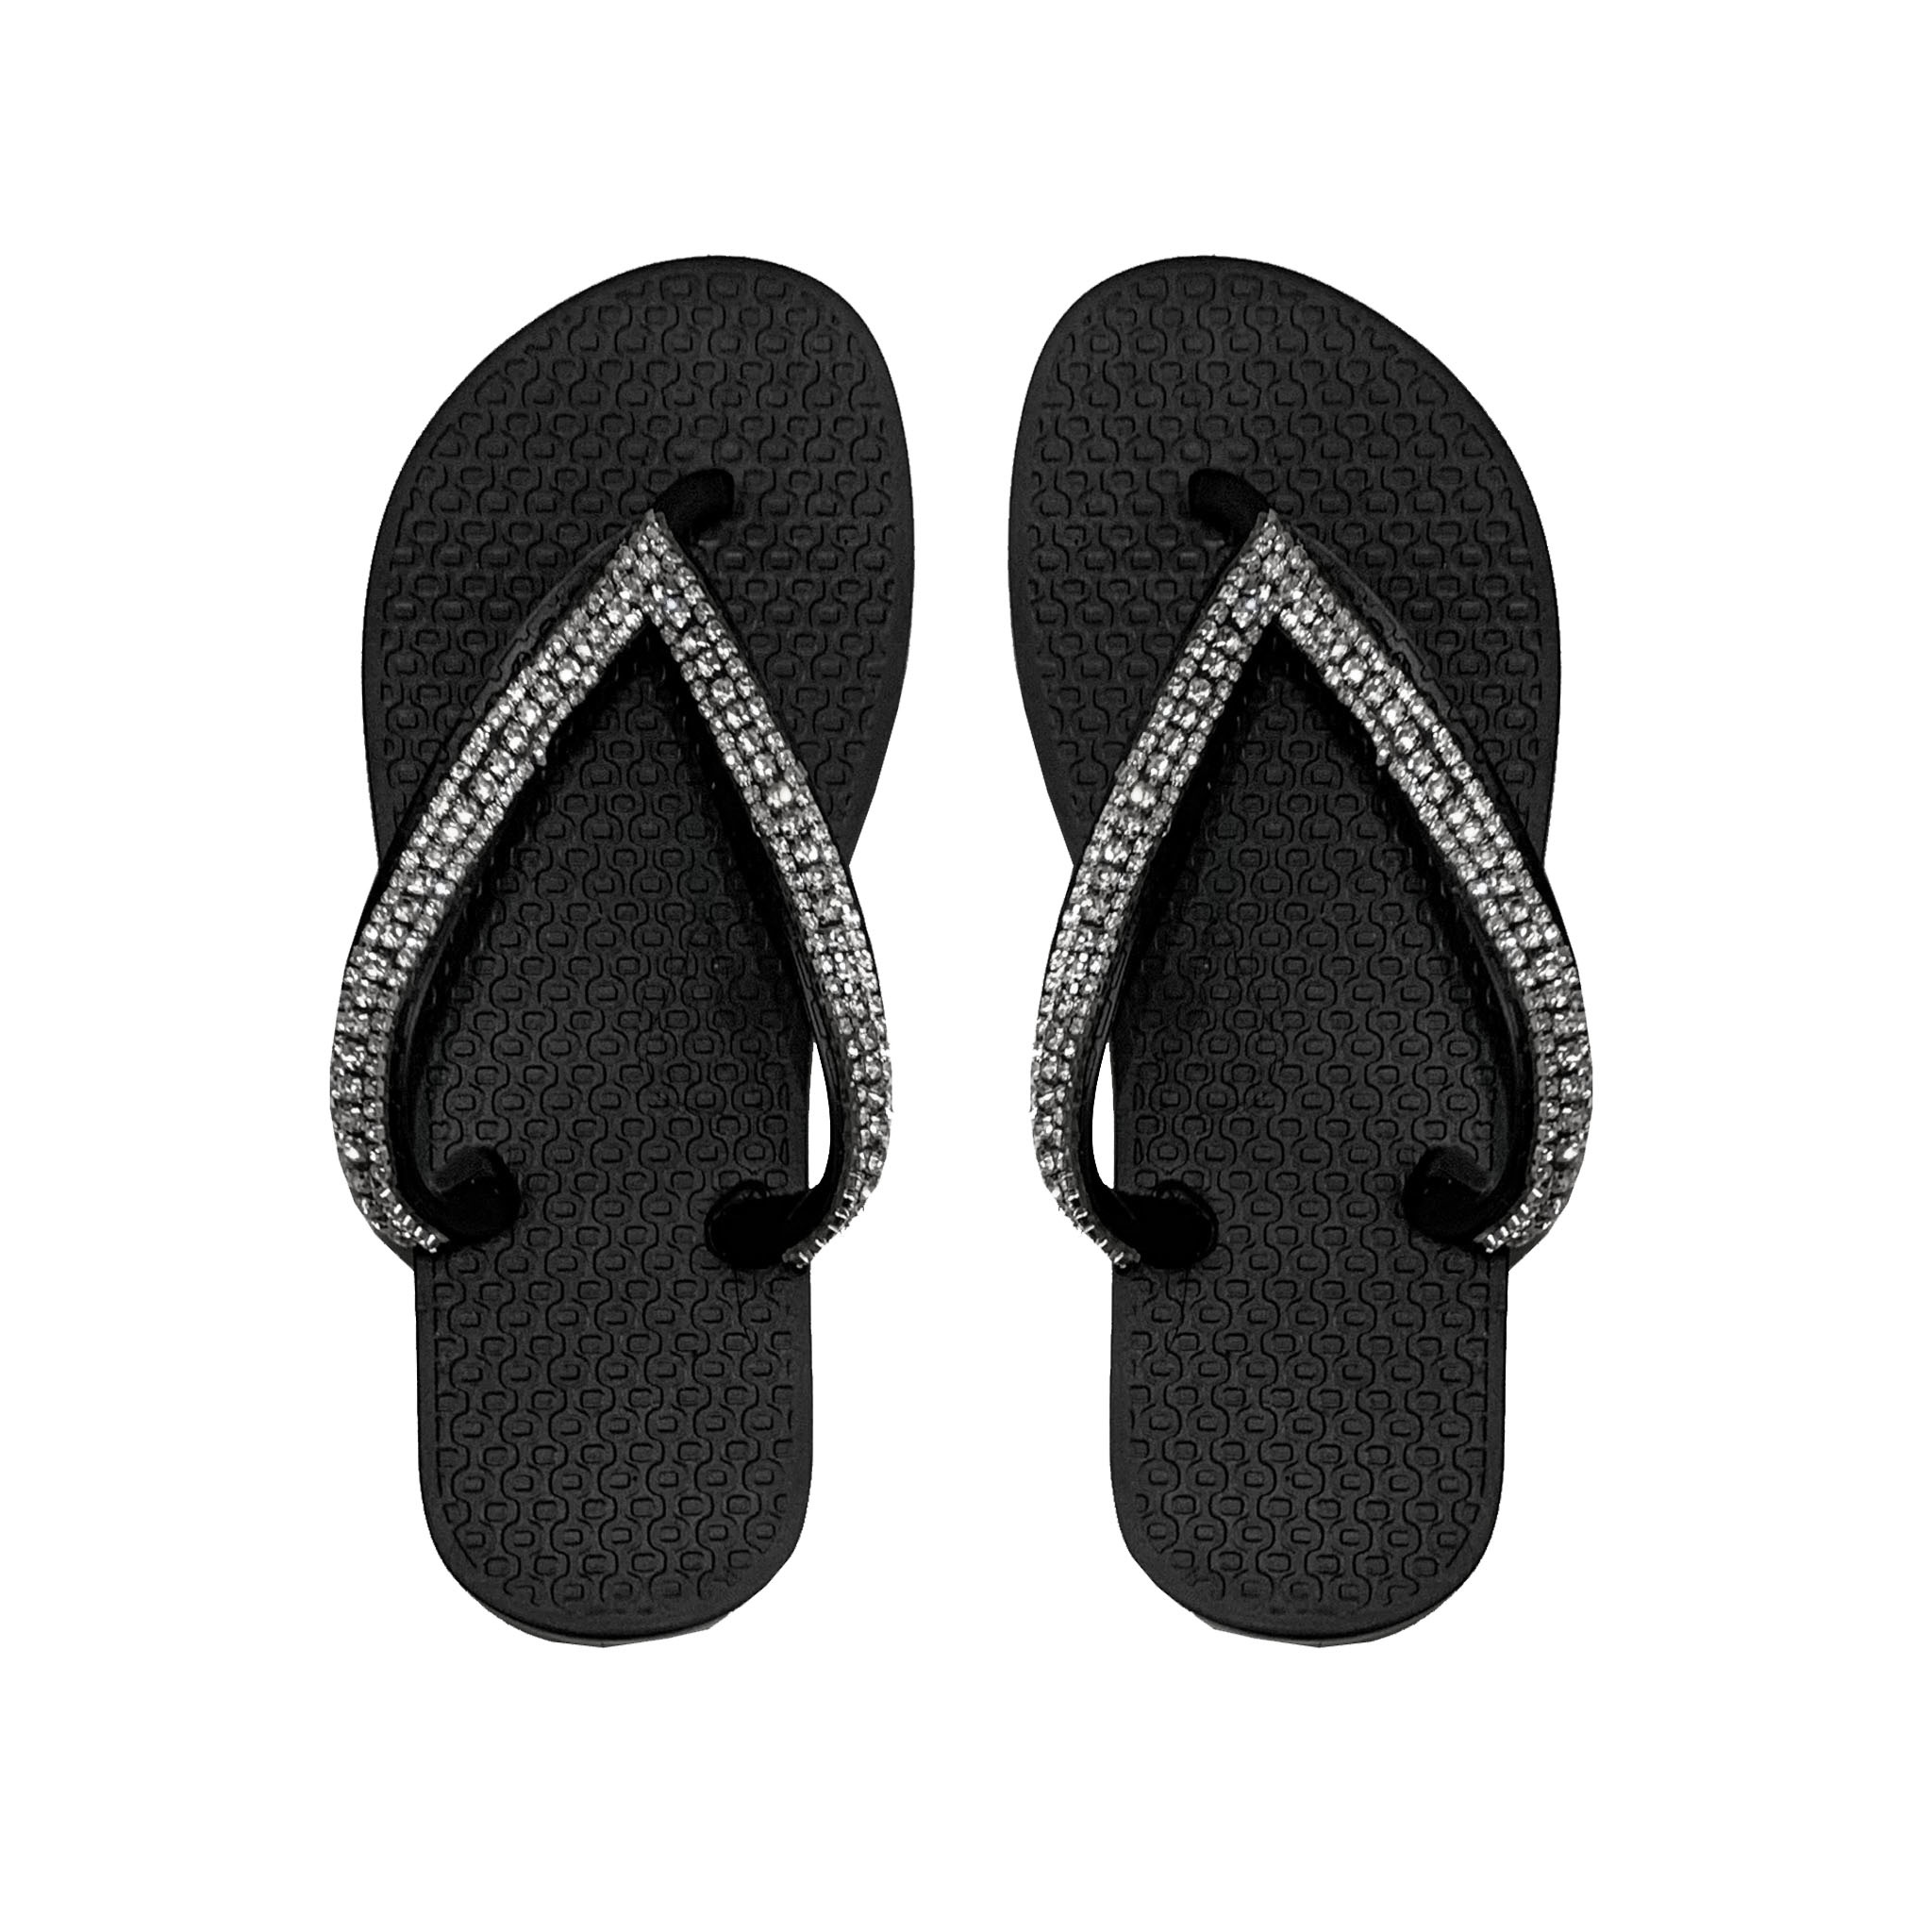 Planet Sea Black Crystal Strap Flip Flops